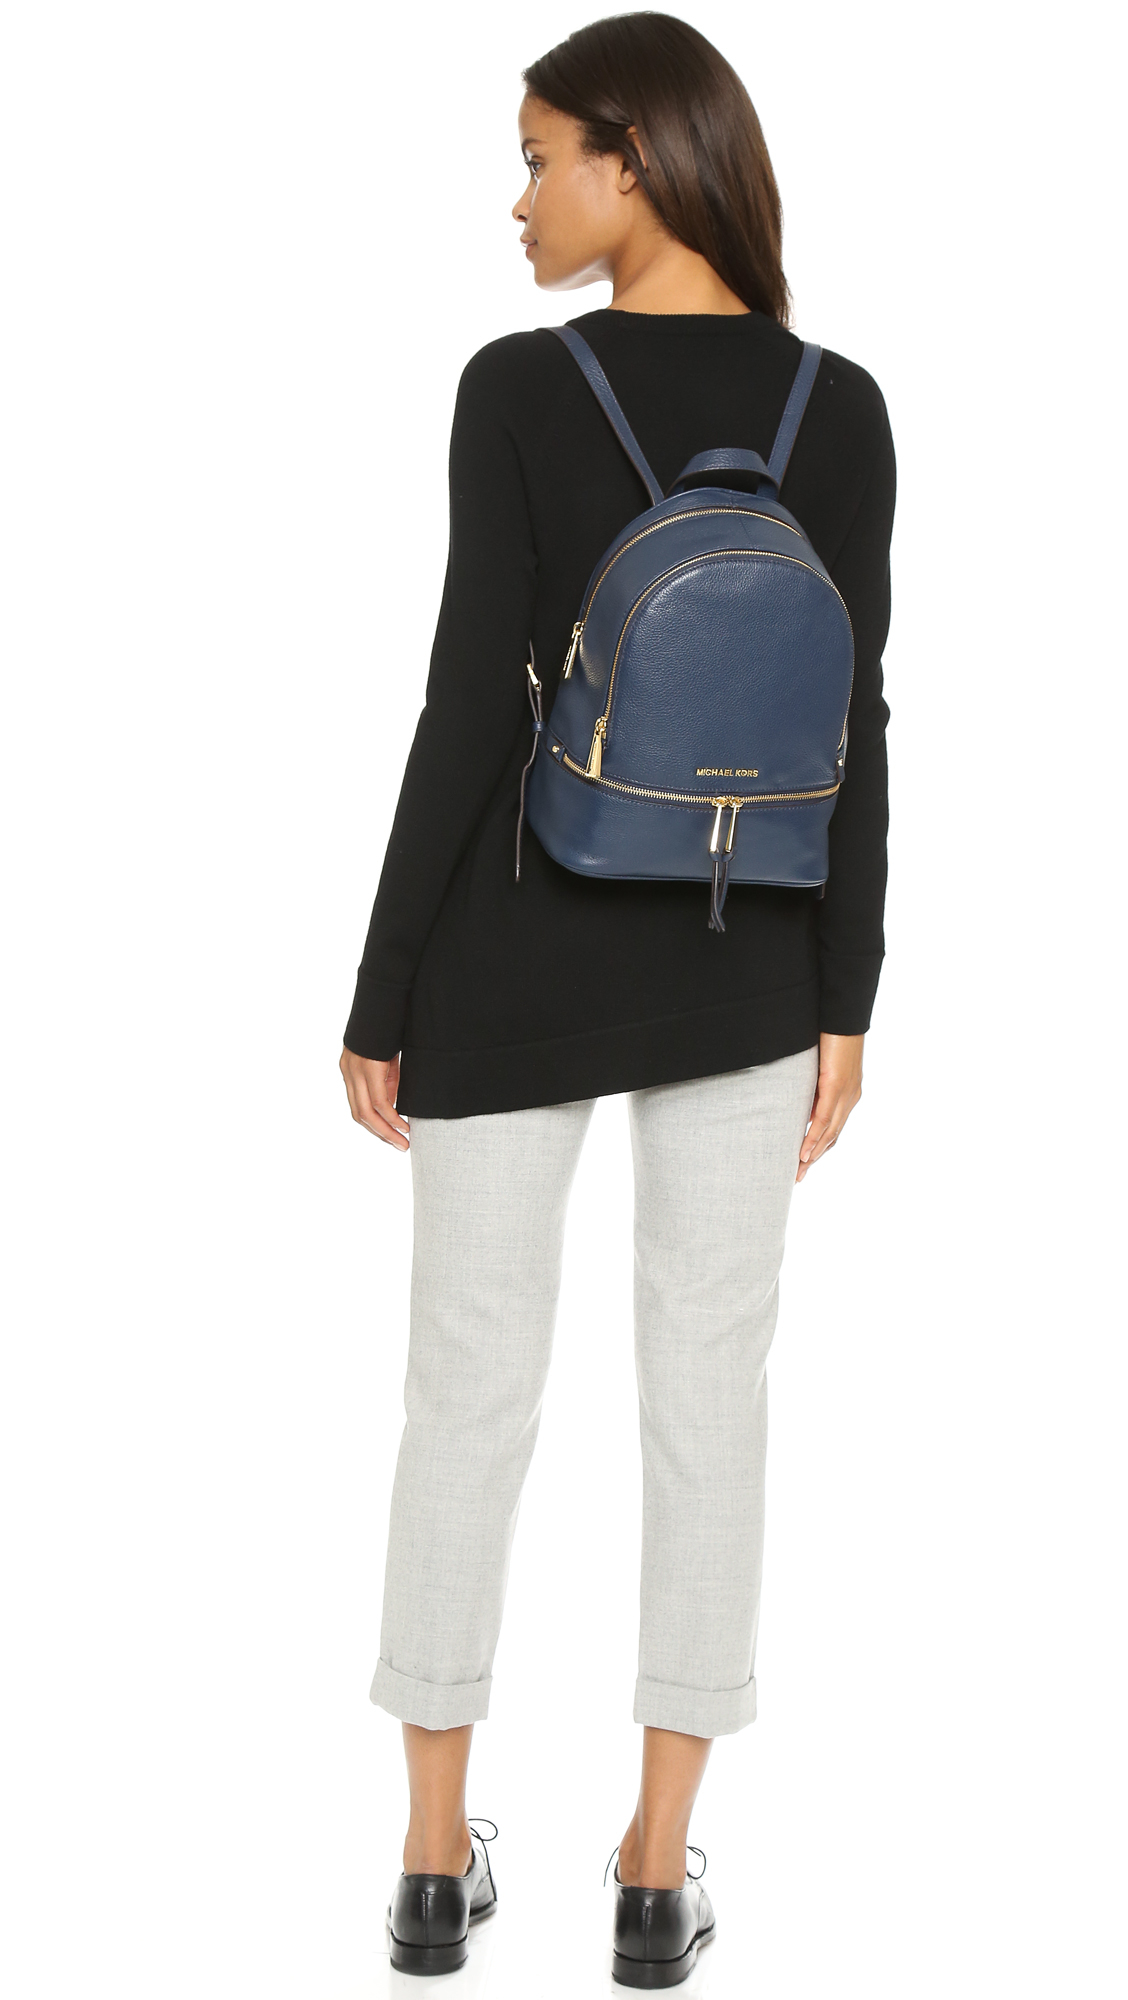 cb5aab032375 Gallery. Previously sold at: Shopbop · Women's Michael By Michael Kors Rhea